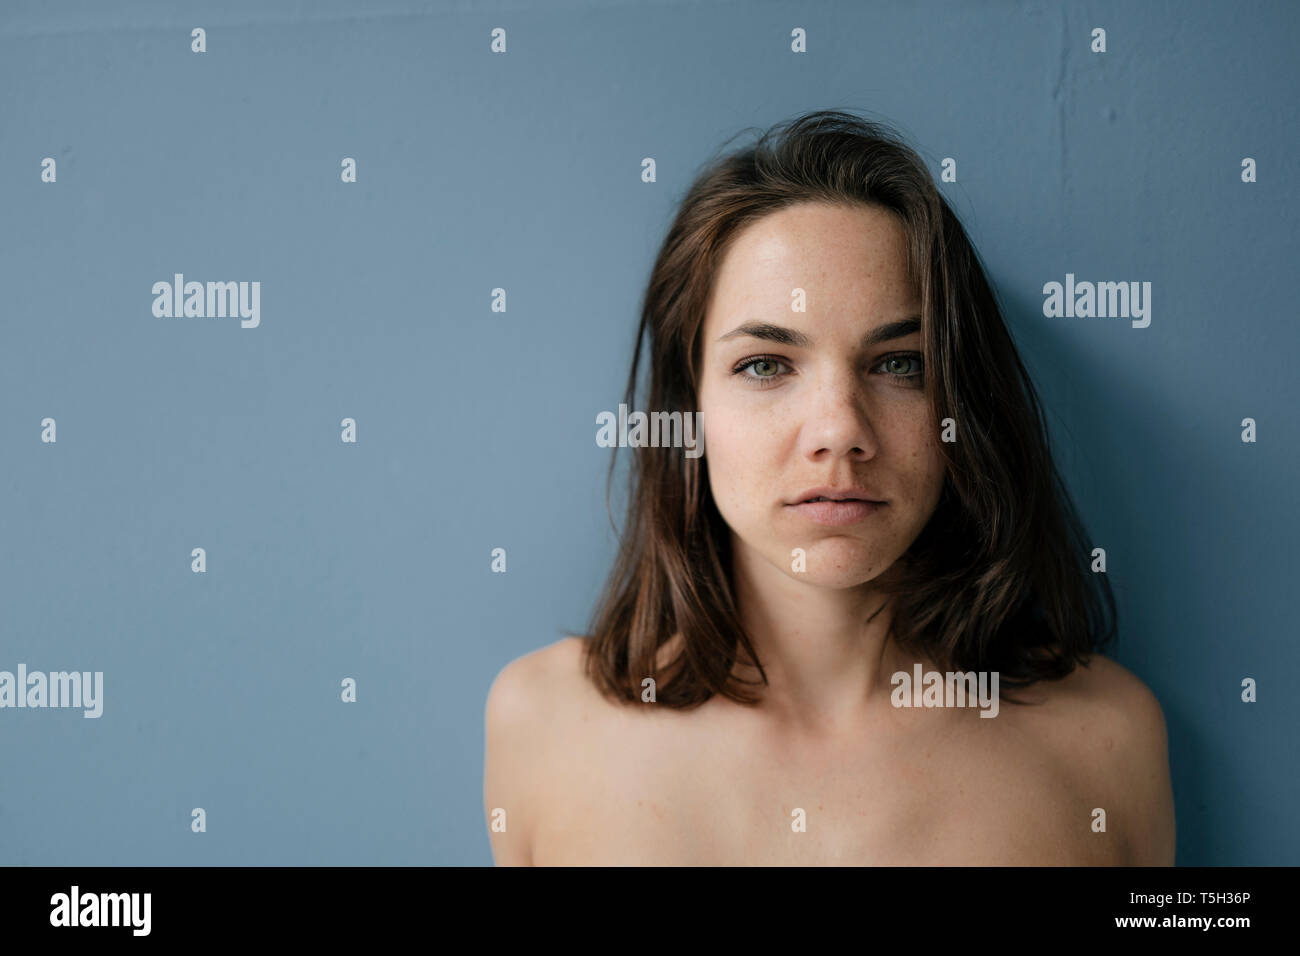 Portrait of a pretty woman with bare shoulders - Stock Image